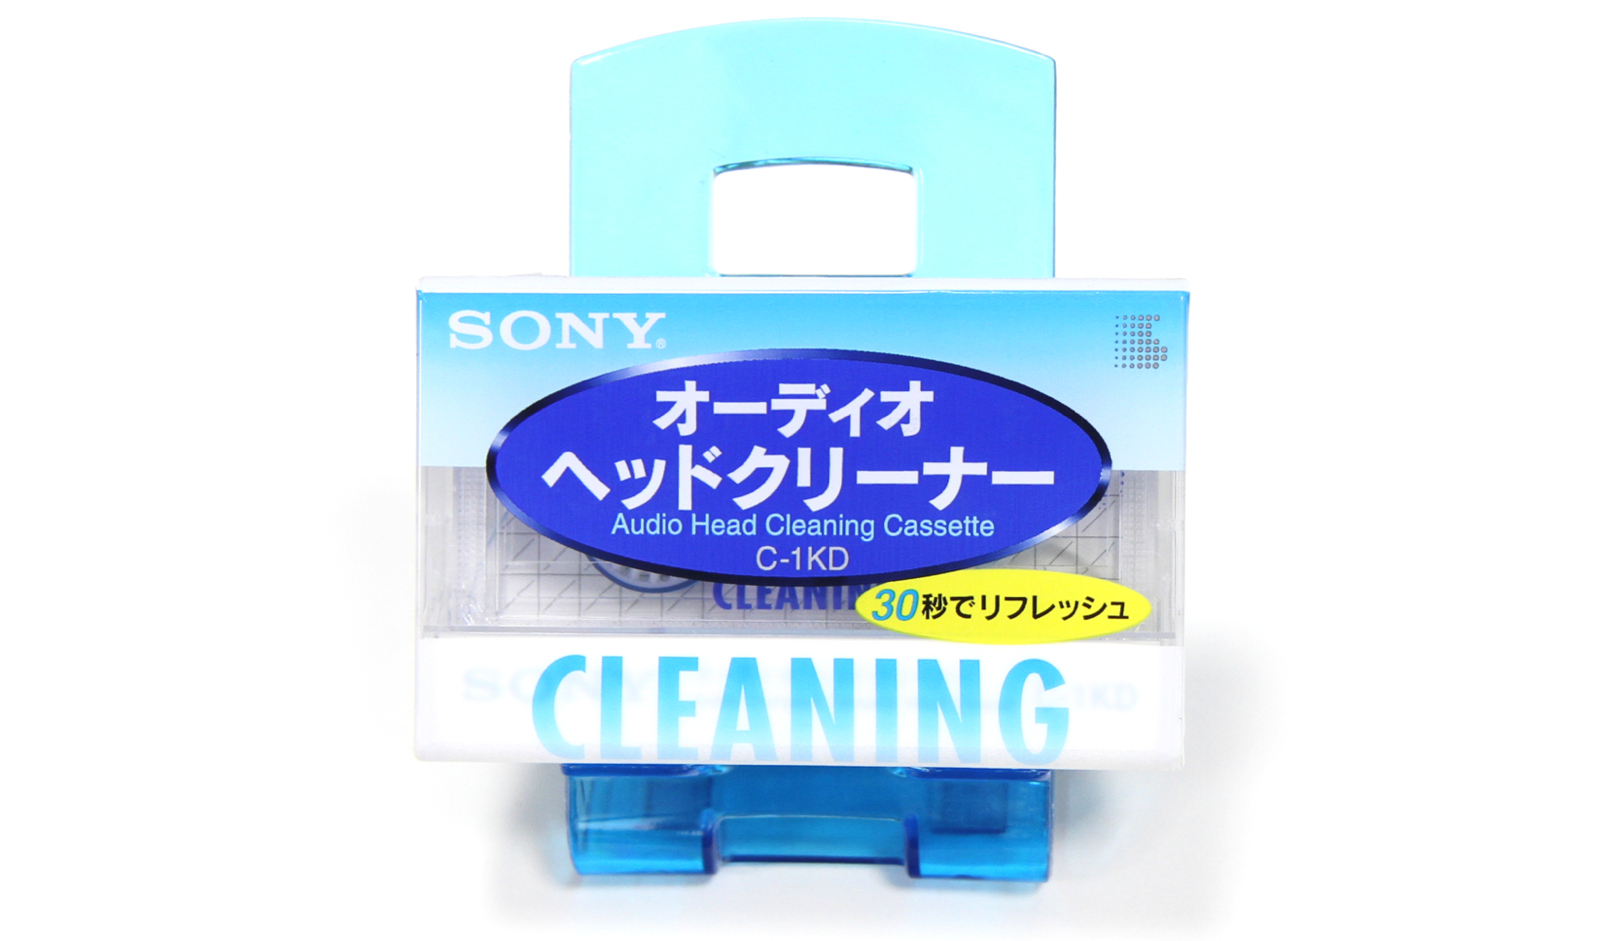 SONY C-1KD Cleaning Cassette